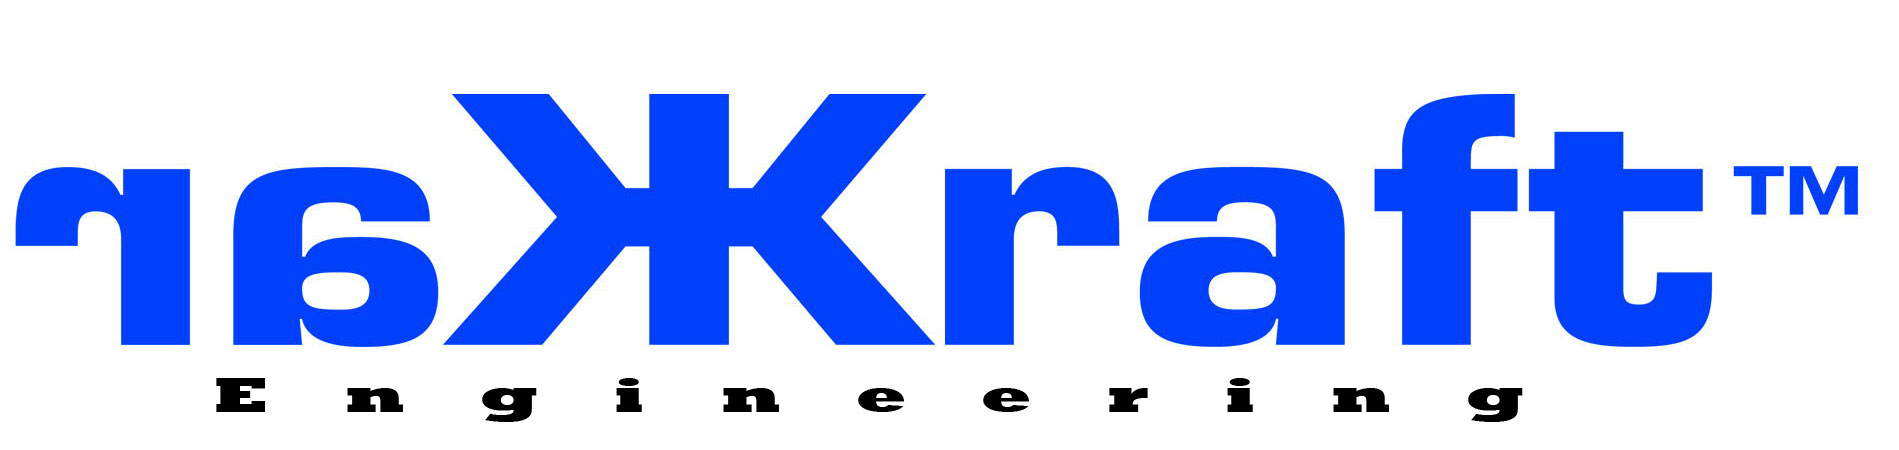 Kar Kraft Engineering